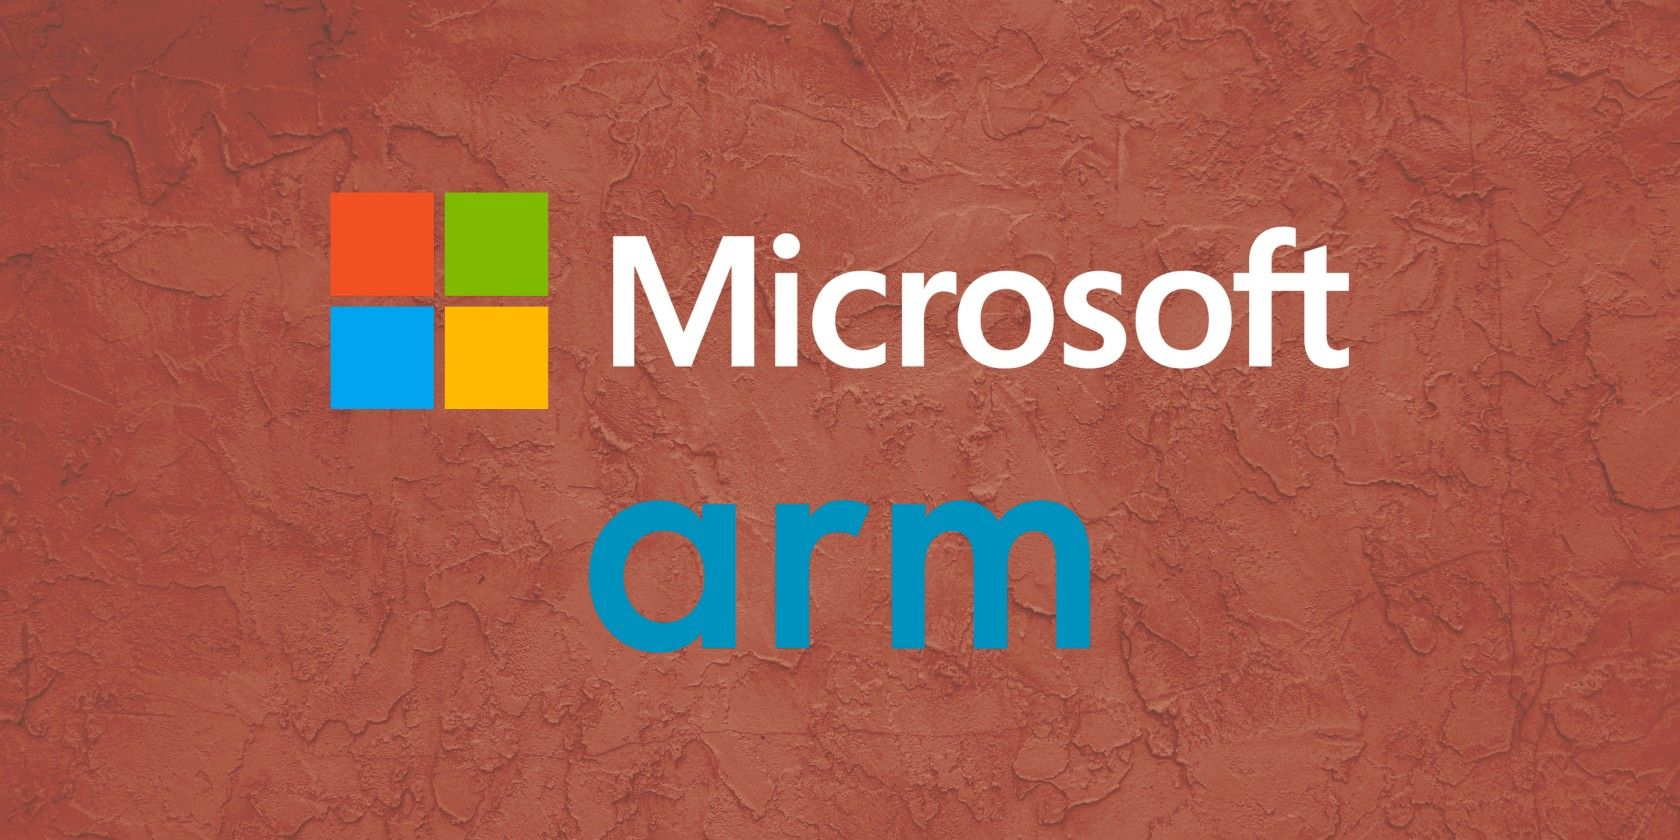 Microsoft to Bring Chip Design In-House With ARM Processors